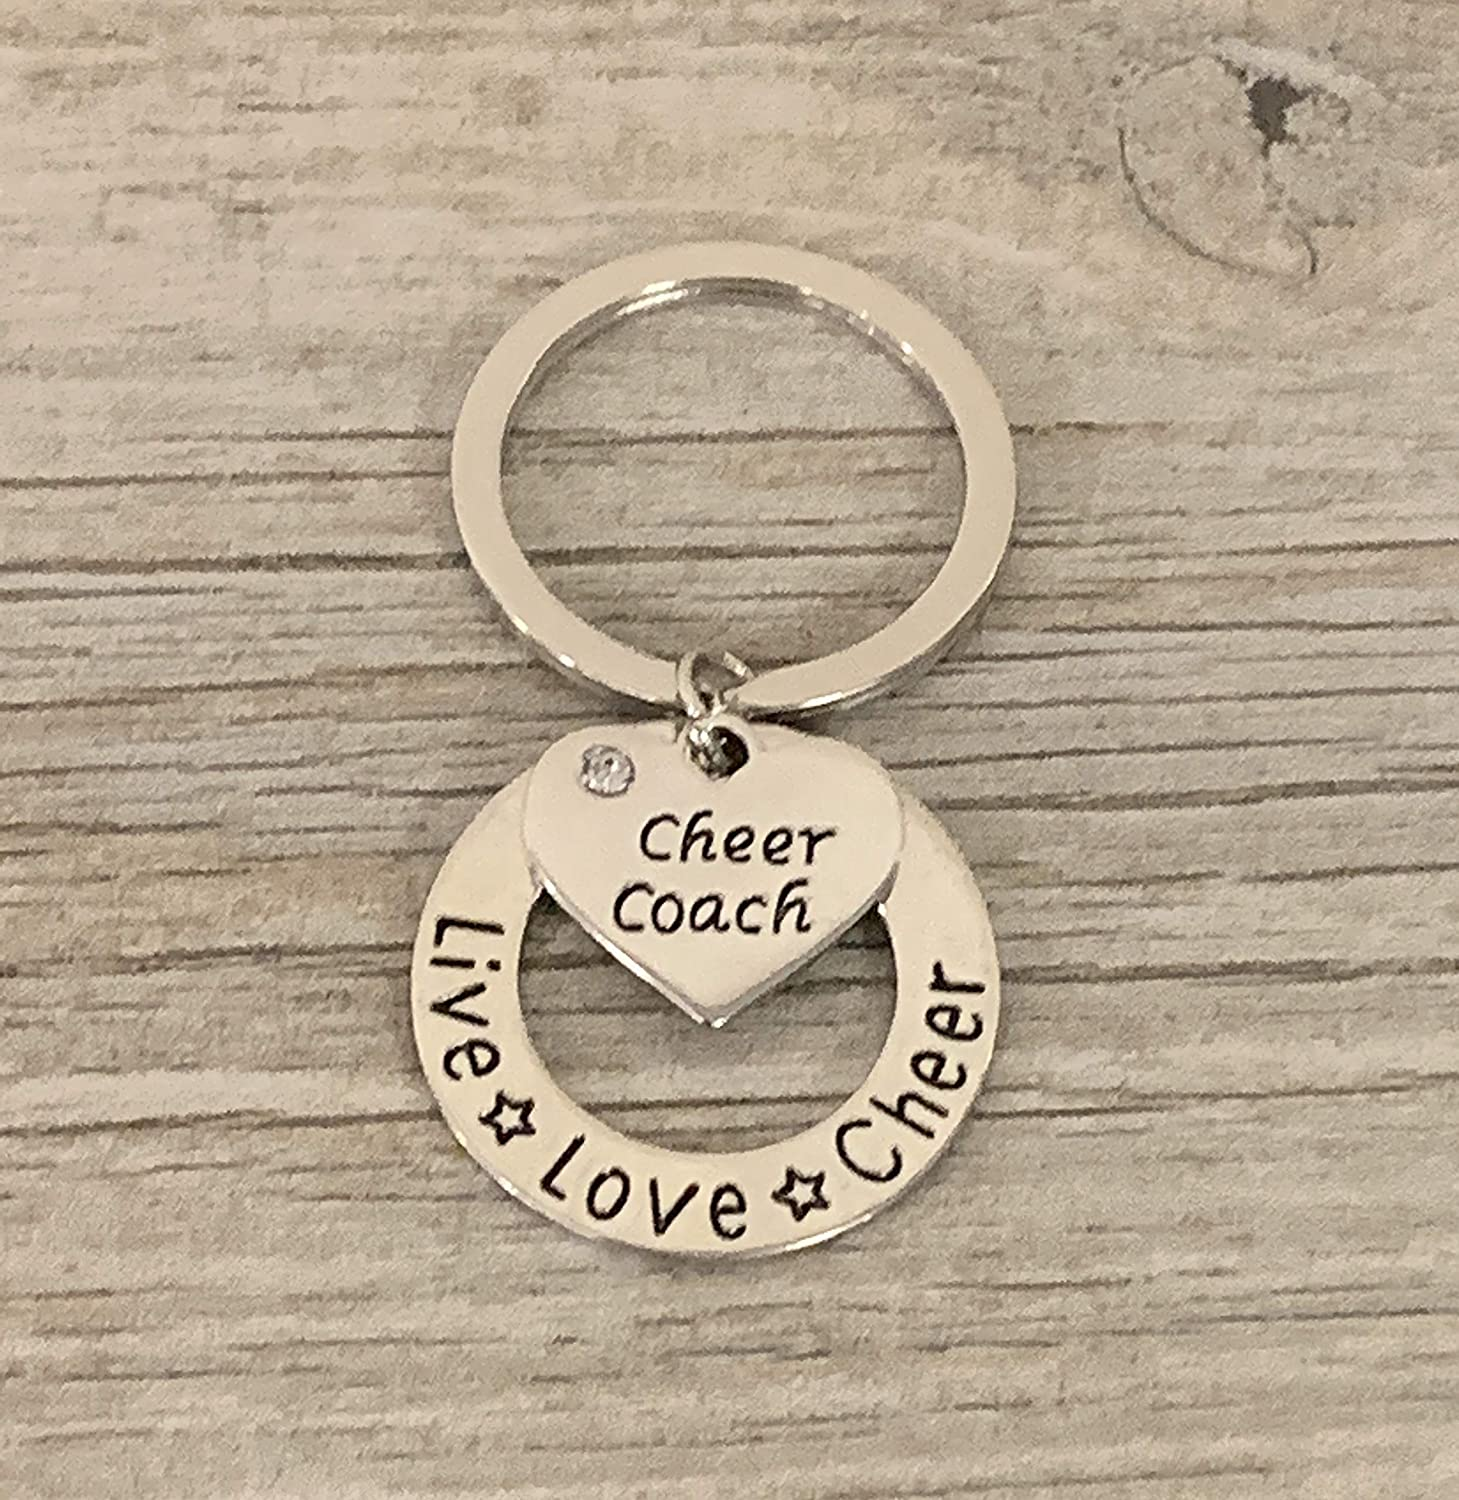 Cheerleading Coach Keychain Sportybella Cheer Coach Gift Live Love Cheer Jewelry for Cheerleader Coaches